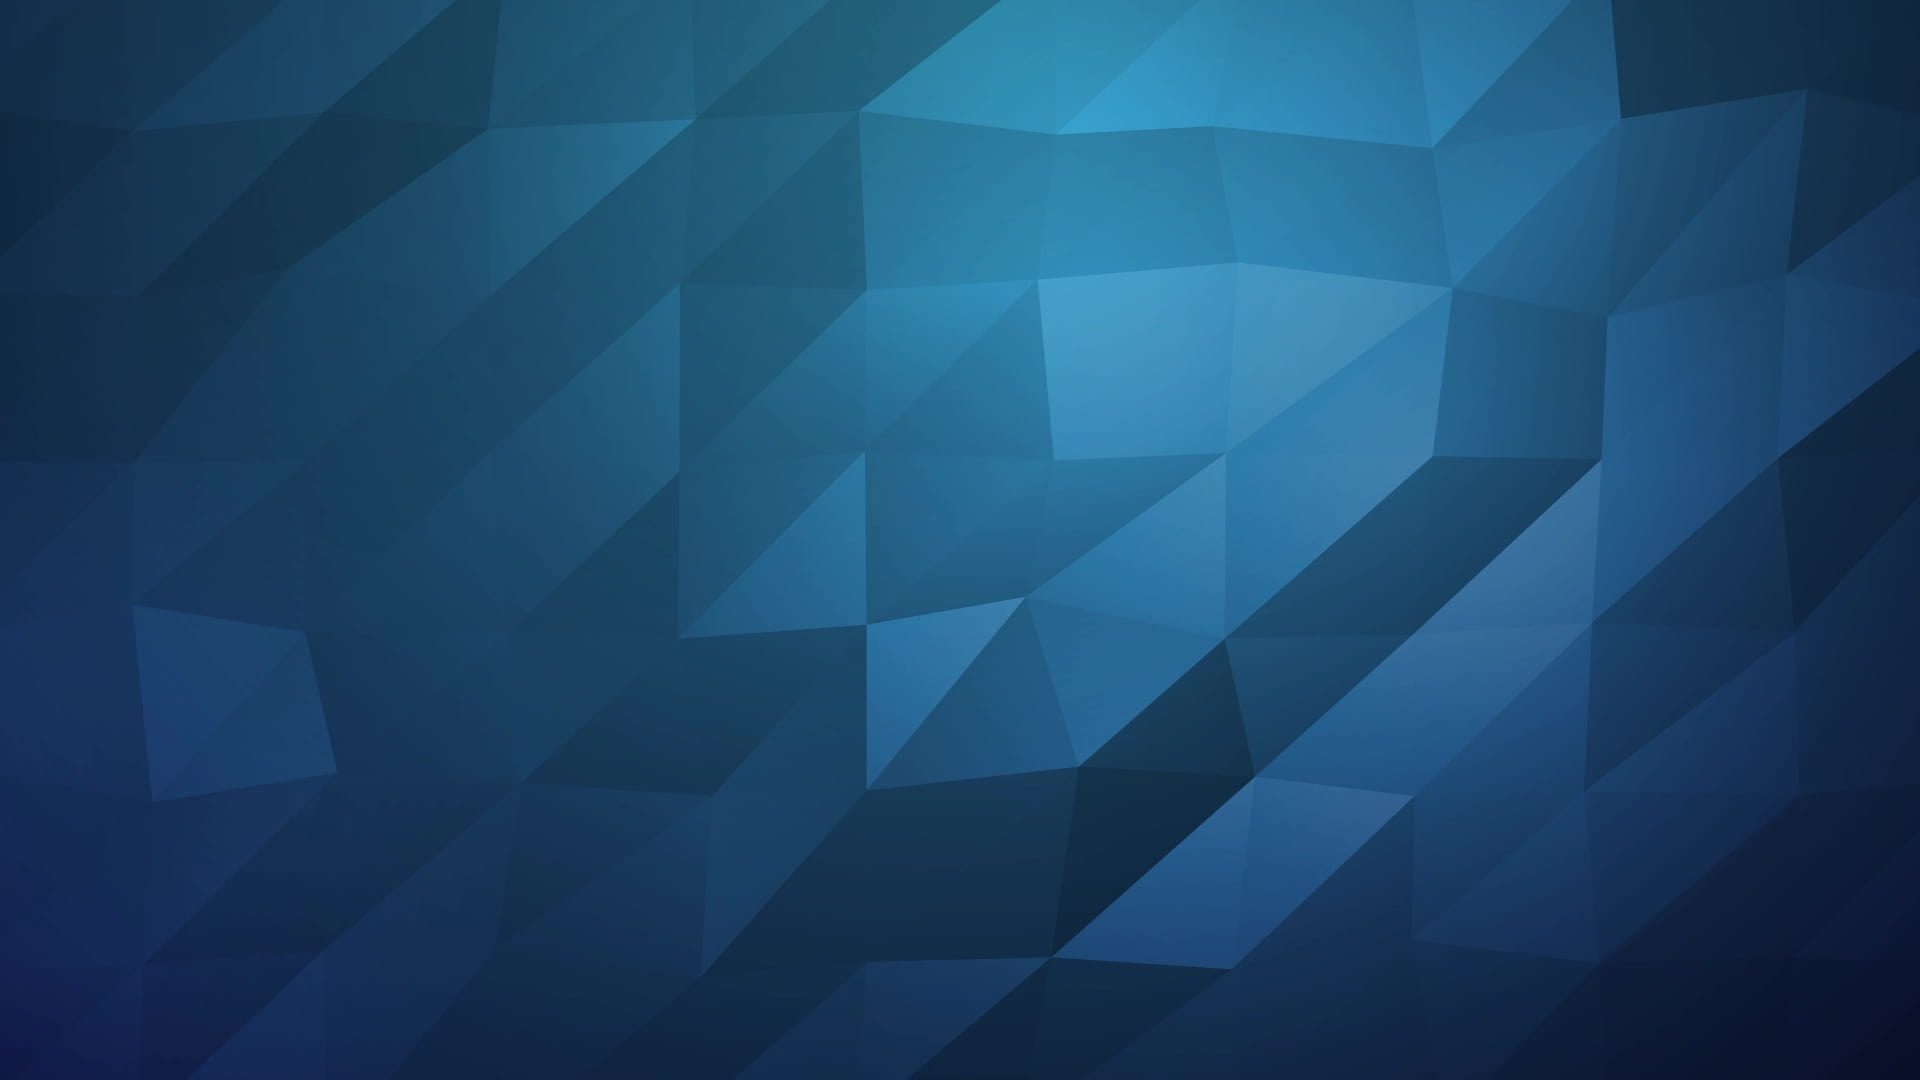 1323725824_preview_Blue-Low-Poly-Background-Full-HD-3.0-1-min